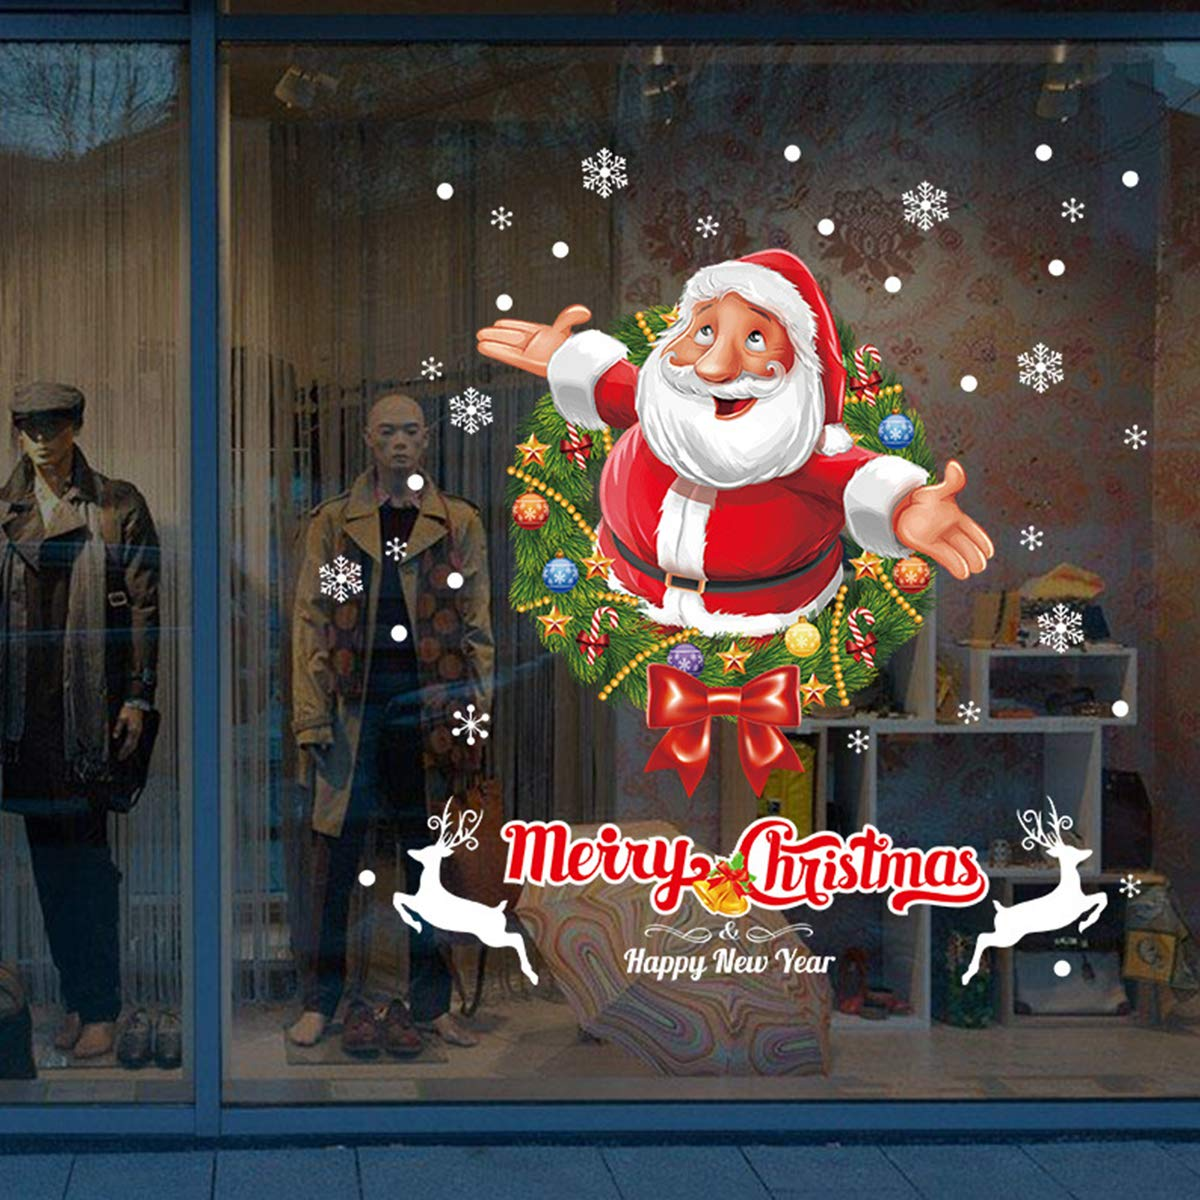 Sunm boutique Christmas Window Clings Decal Santa Claus Snowflake Wall Stickers Christmas Decorations Removable Art Decor Wall Decal